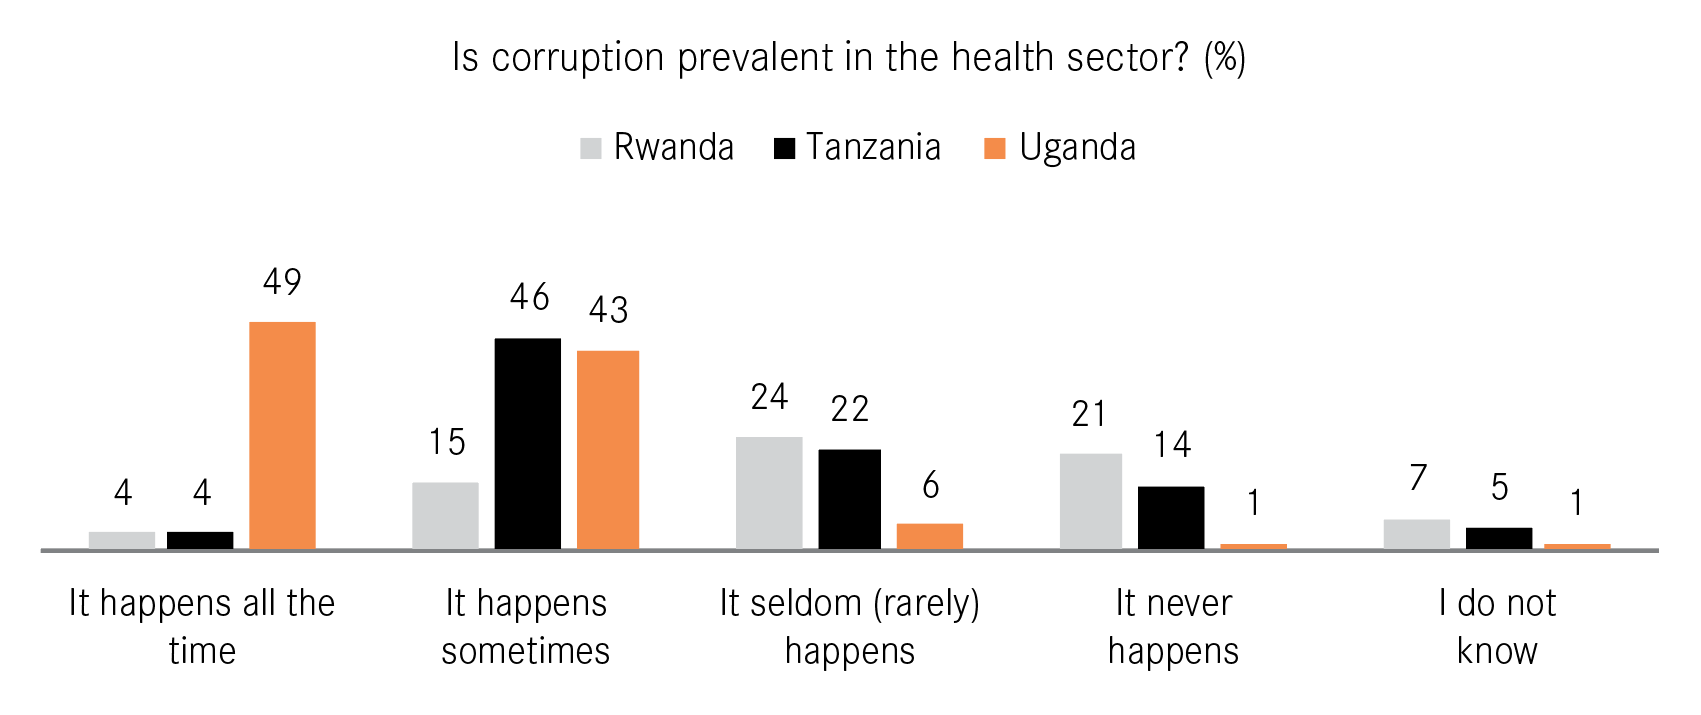 Figure 2: Perceived prevalence of corruption in the health sector in Rwanda, Tanzania and Uganda.